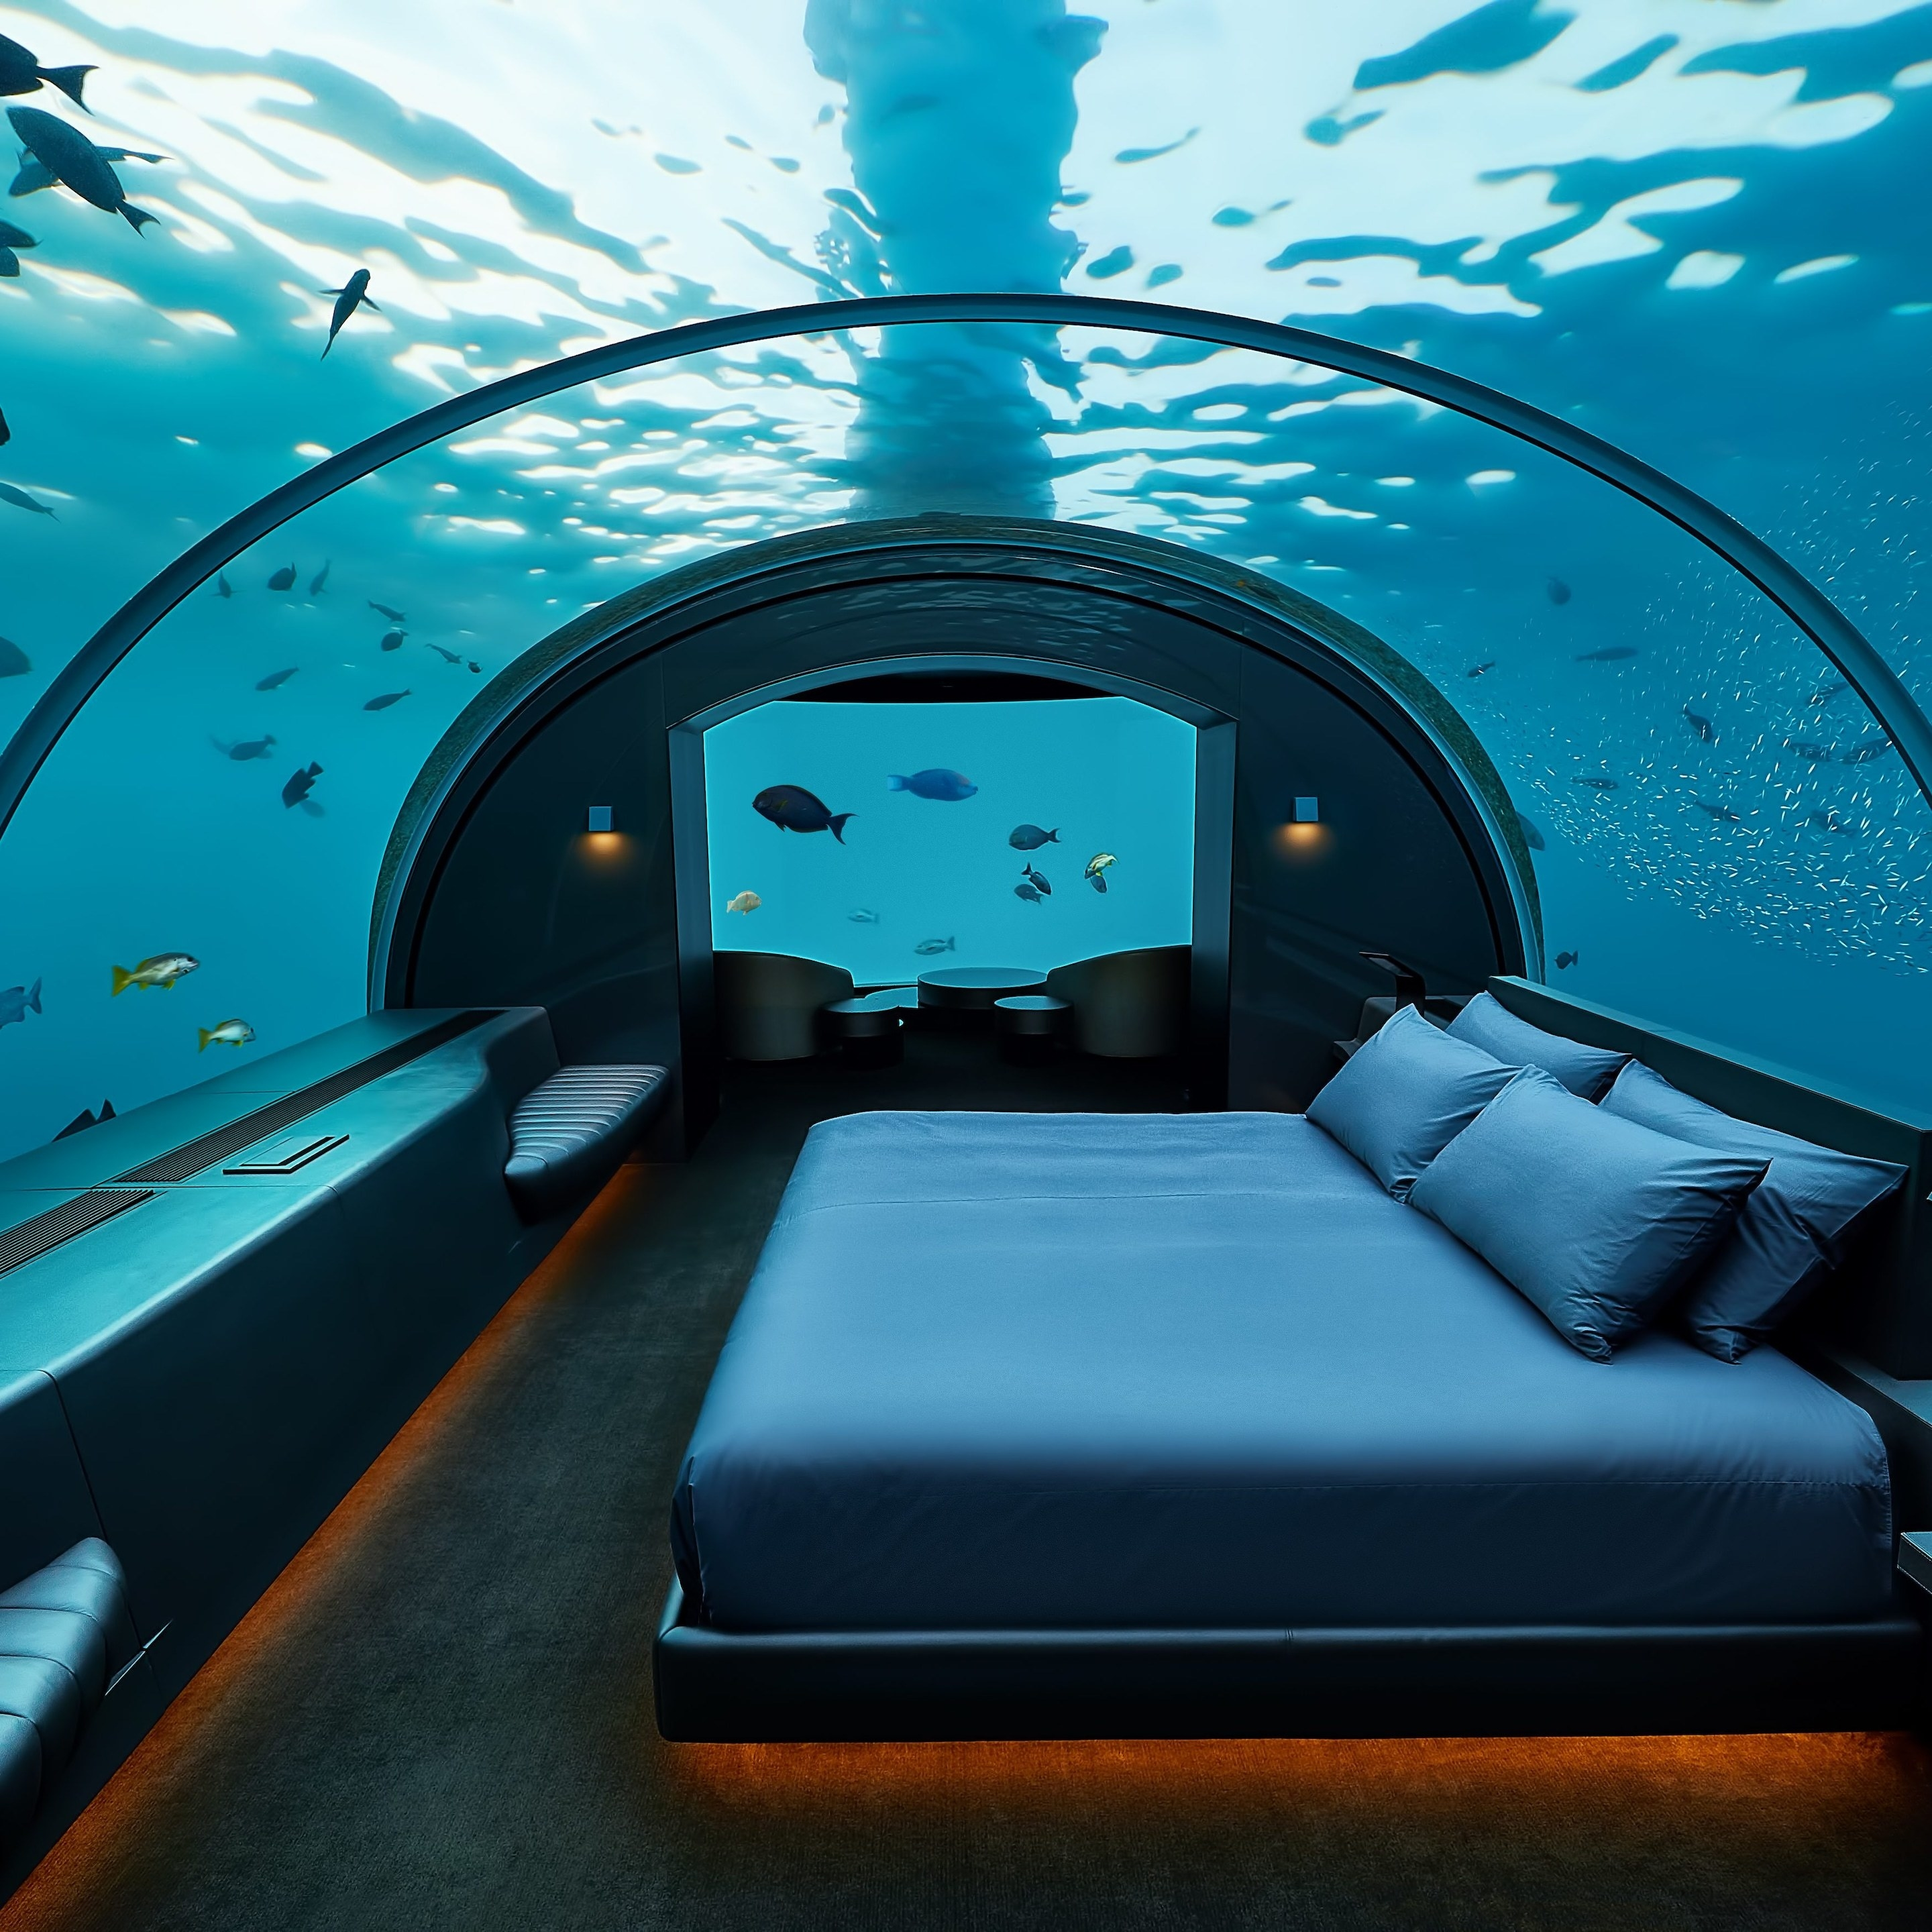 the underwater room with a domed glass ceiling and fish swimming in the ocean